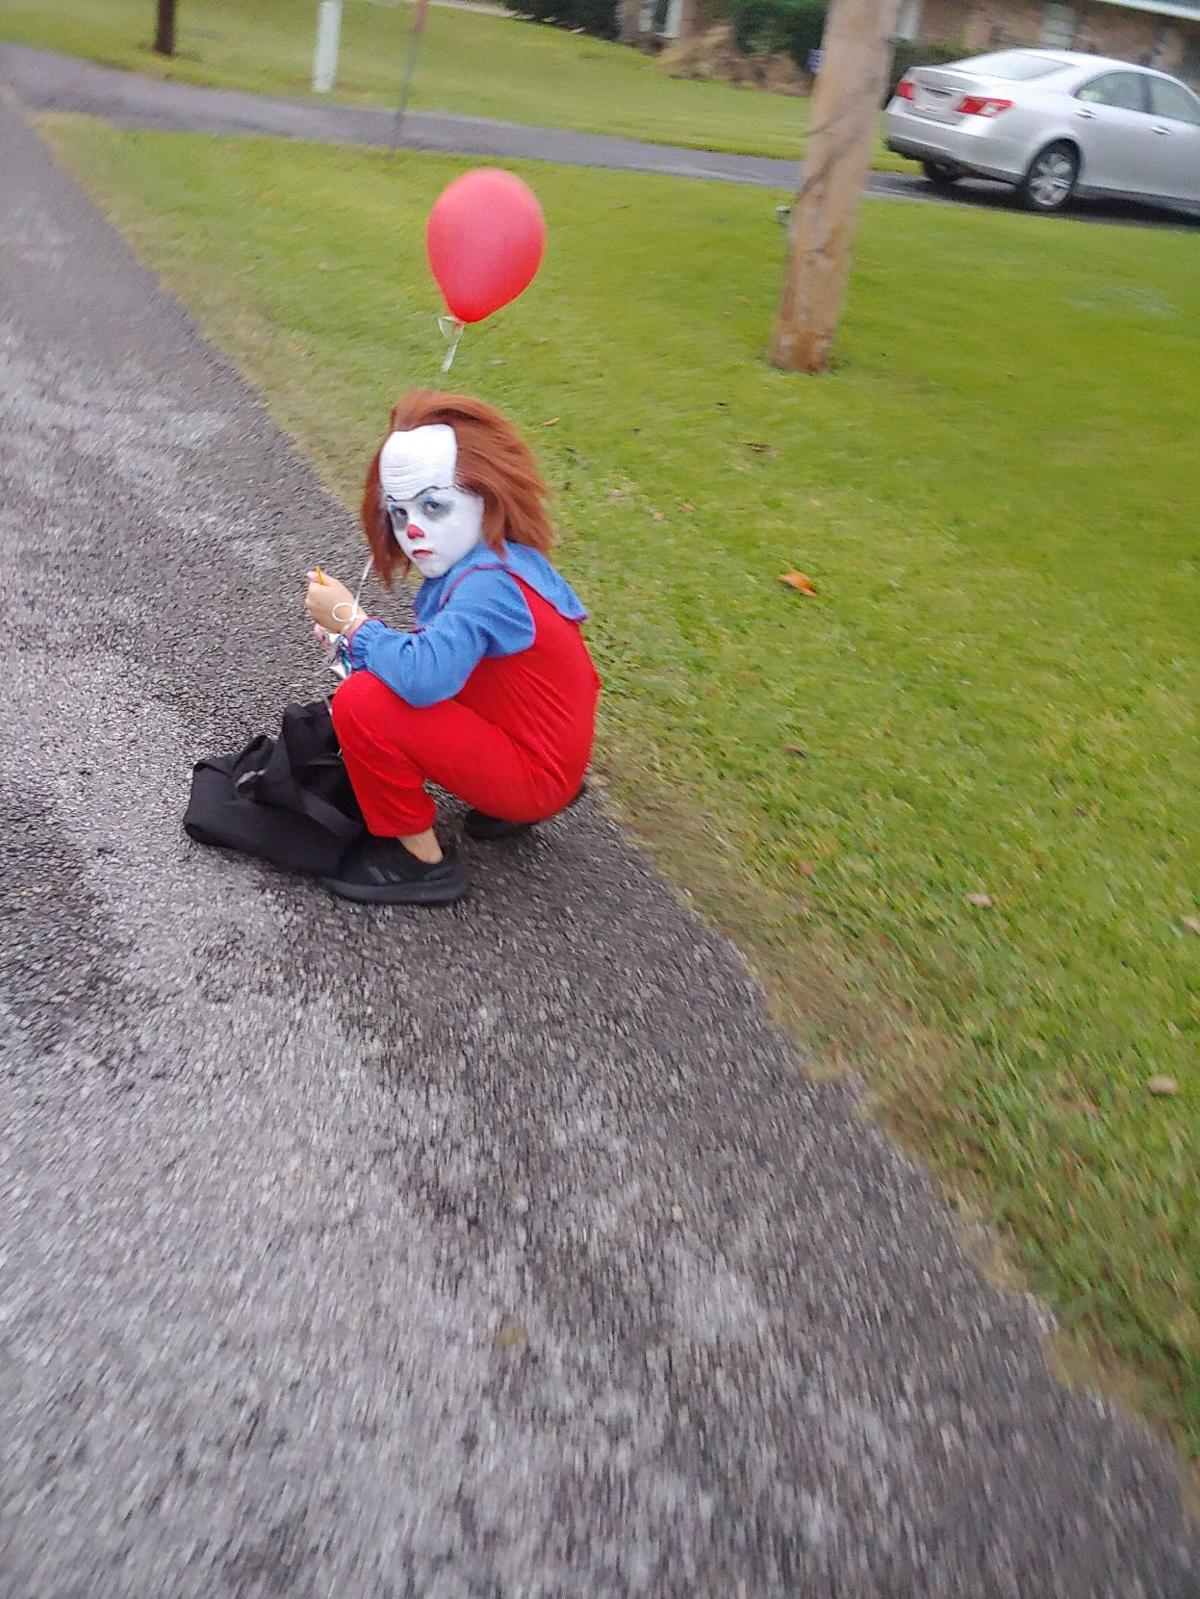 Carter Henson of Brusly as Pennywise copy.jpg